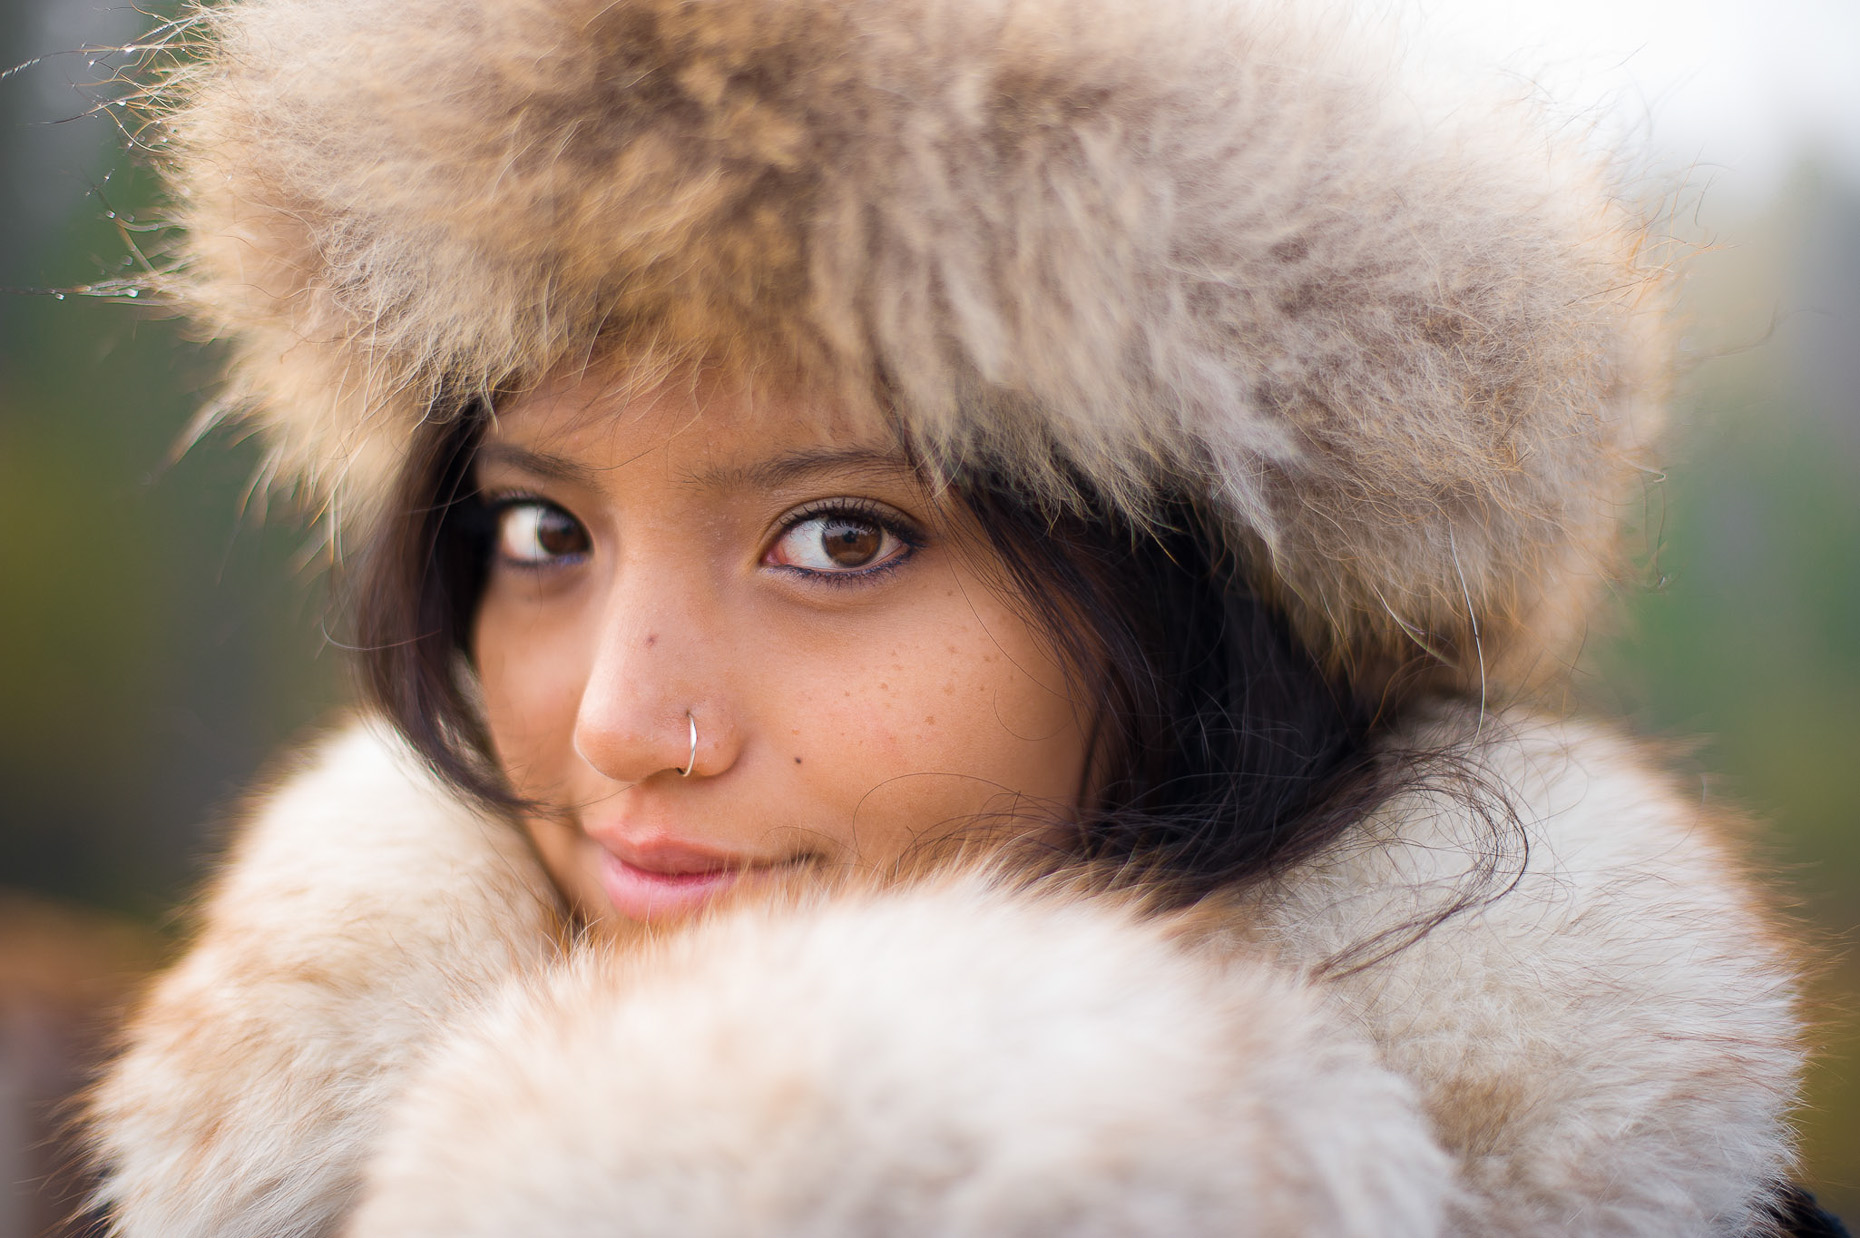 Outdoor fashion portrait of young woman